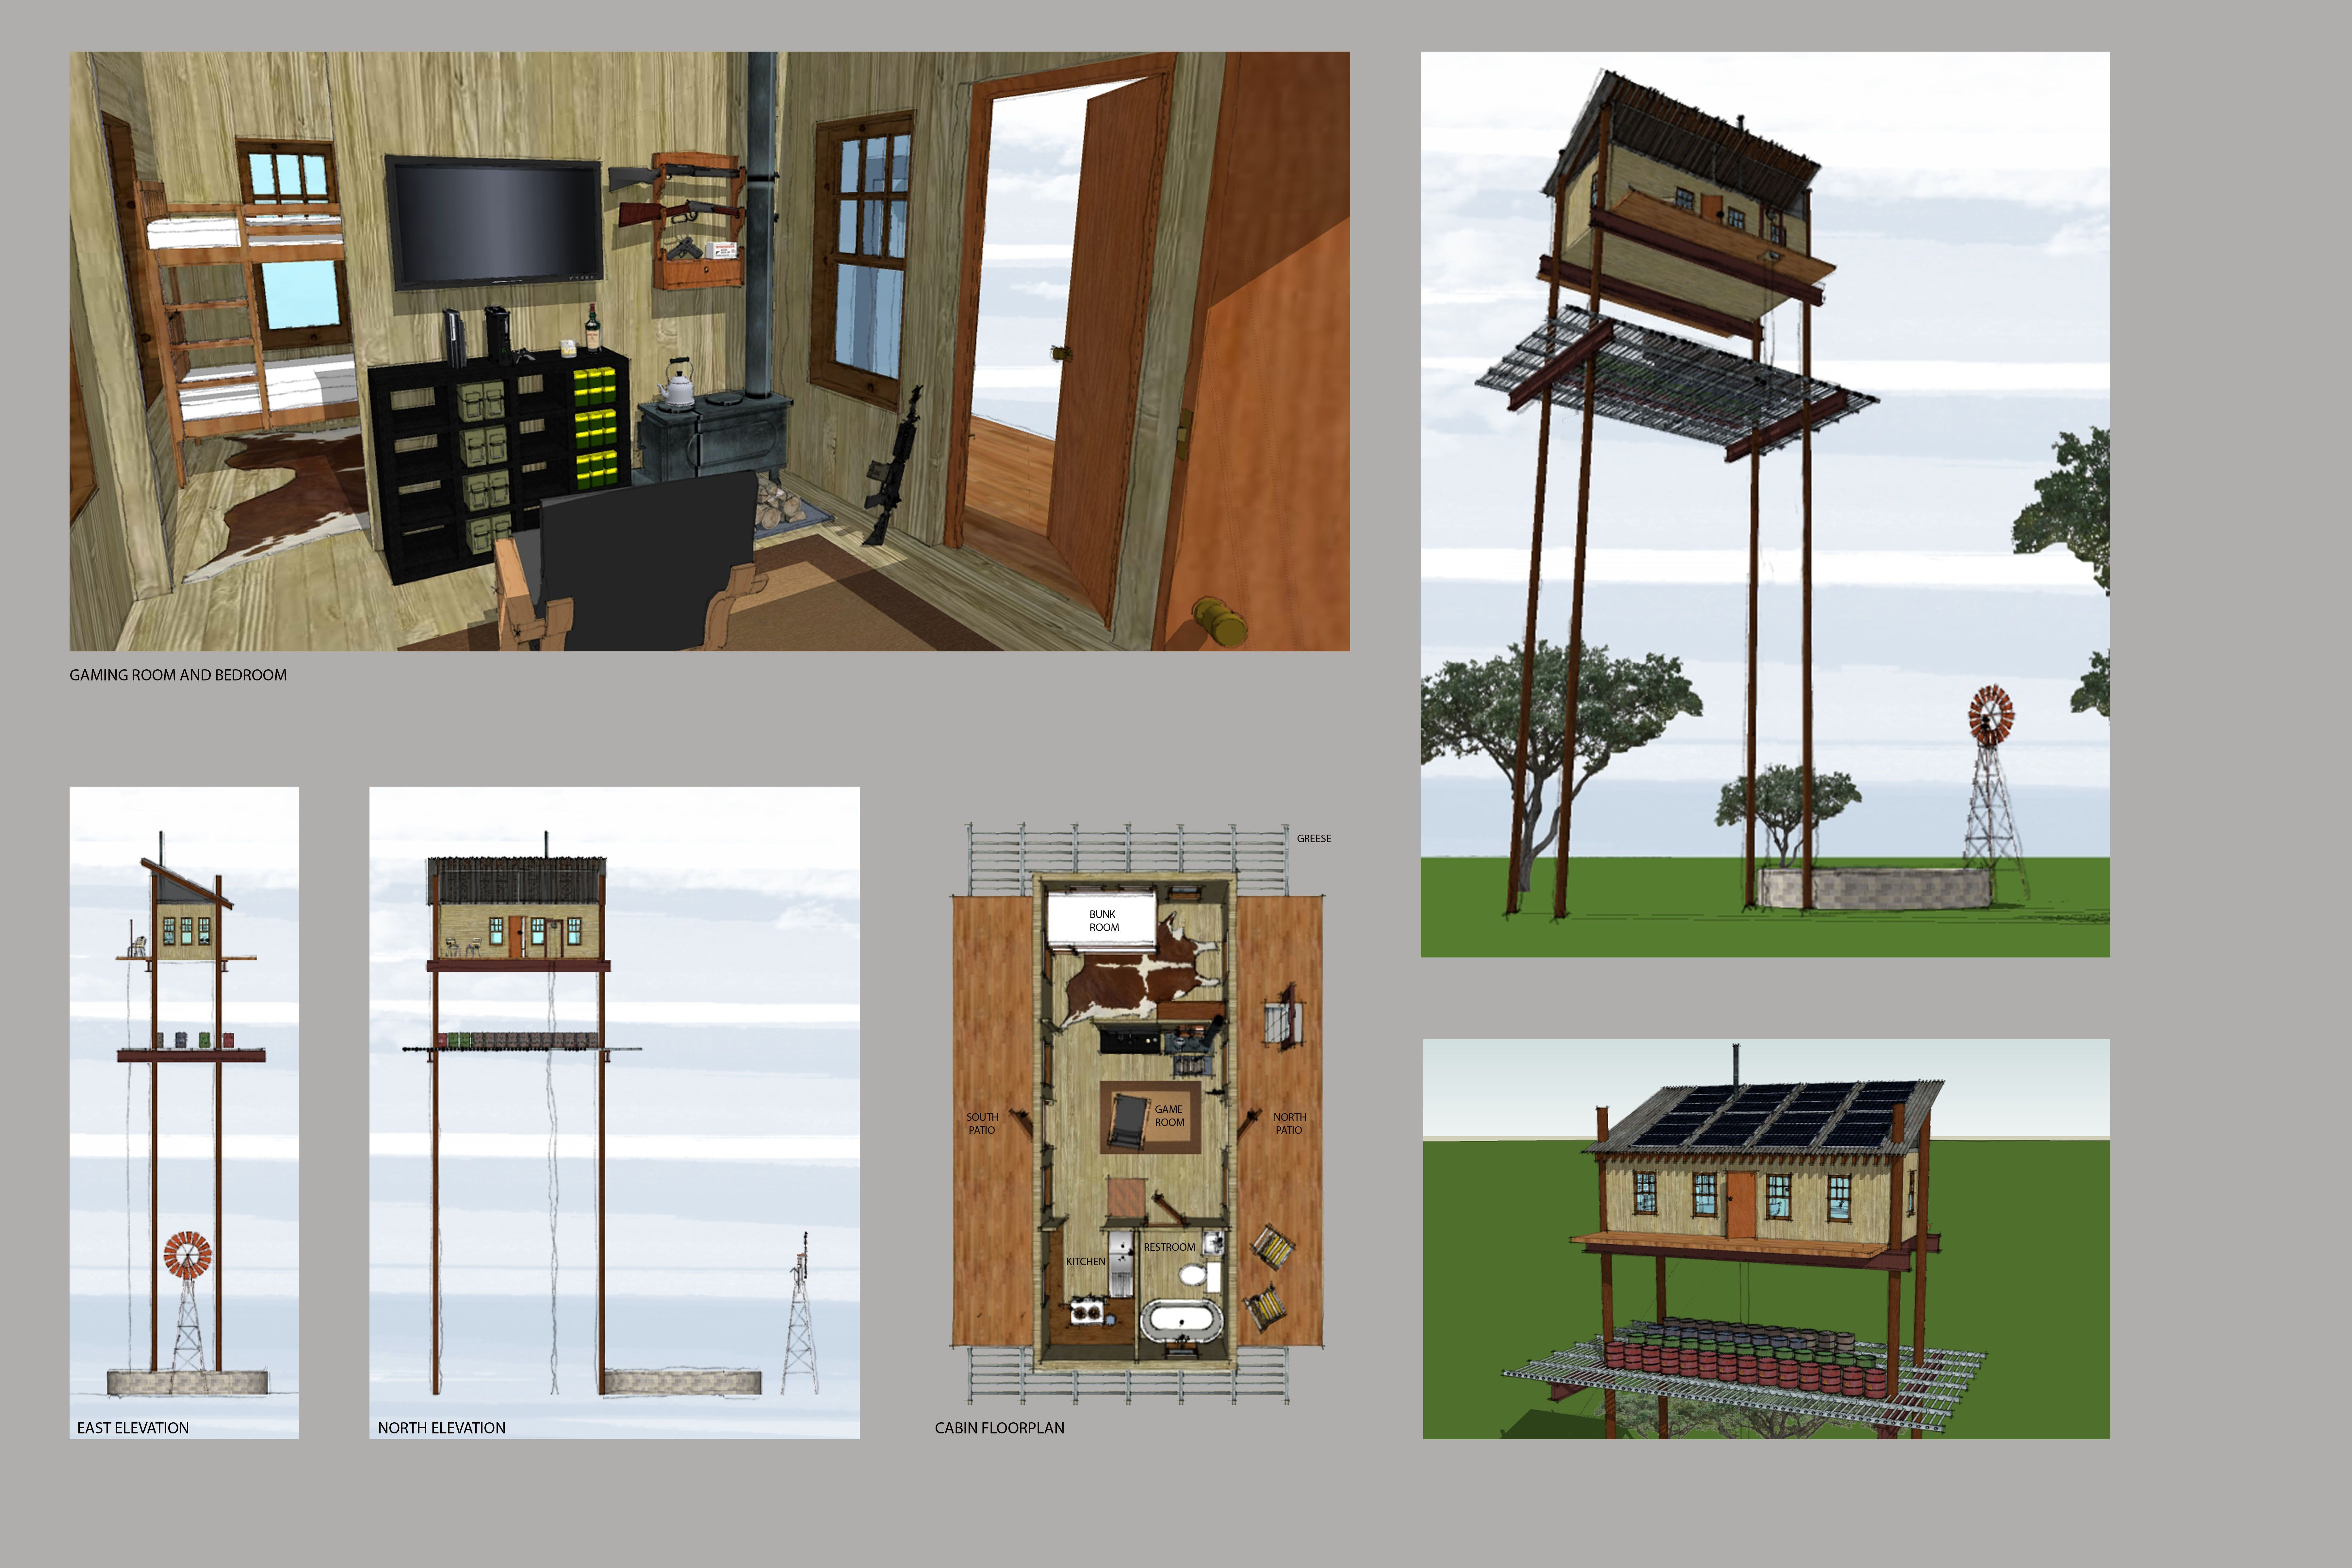 Zombie Safe House Cabin | Safe room, Tiny house design ... on sidecar plan, what's your plan, earthquake plan,